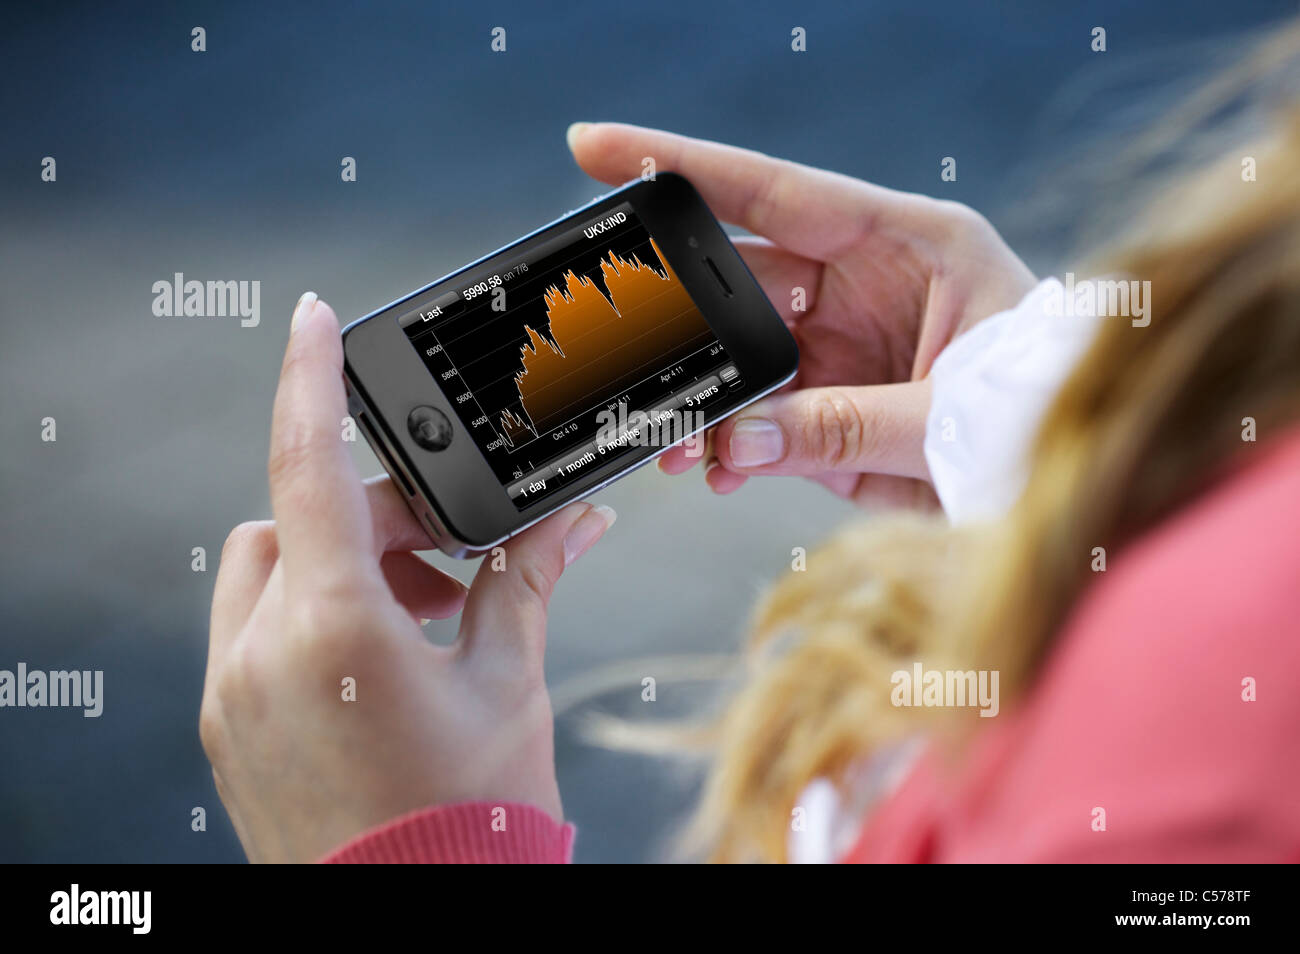 Close up view of a woman checking stock market with Bloomberg finance application on an iphone 4 - Stock Image